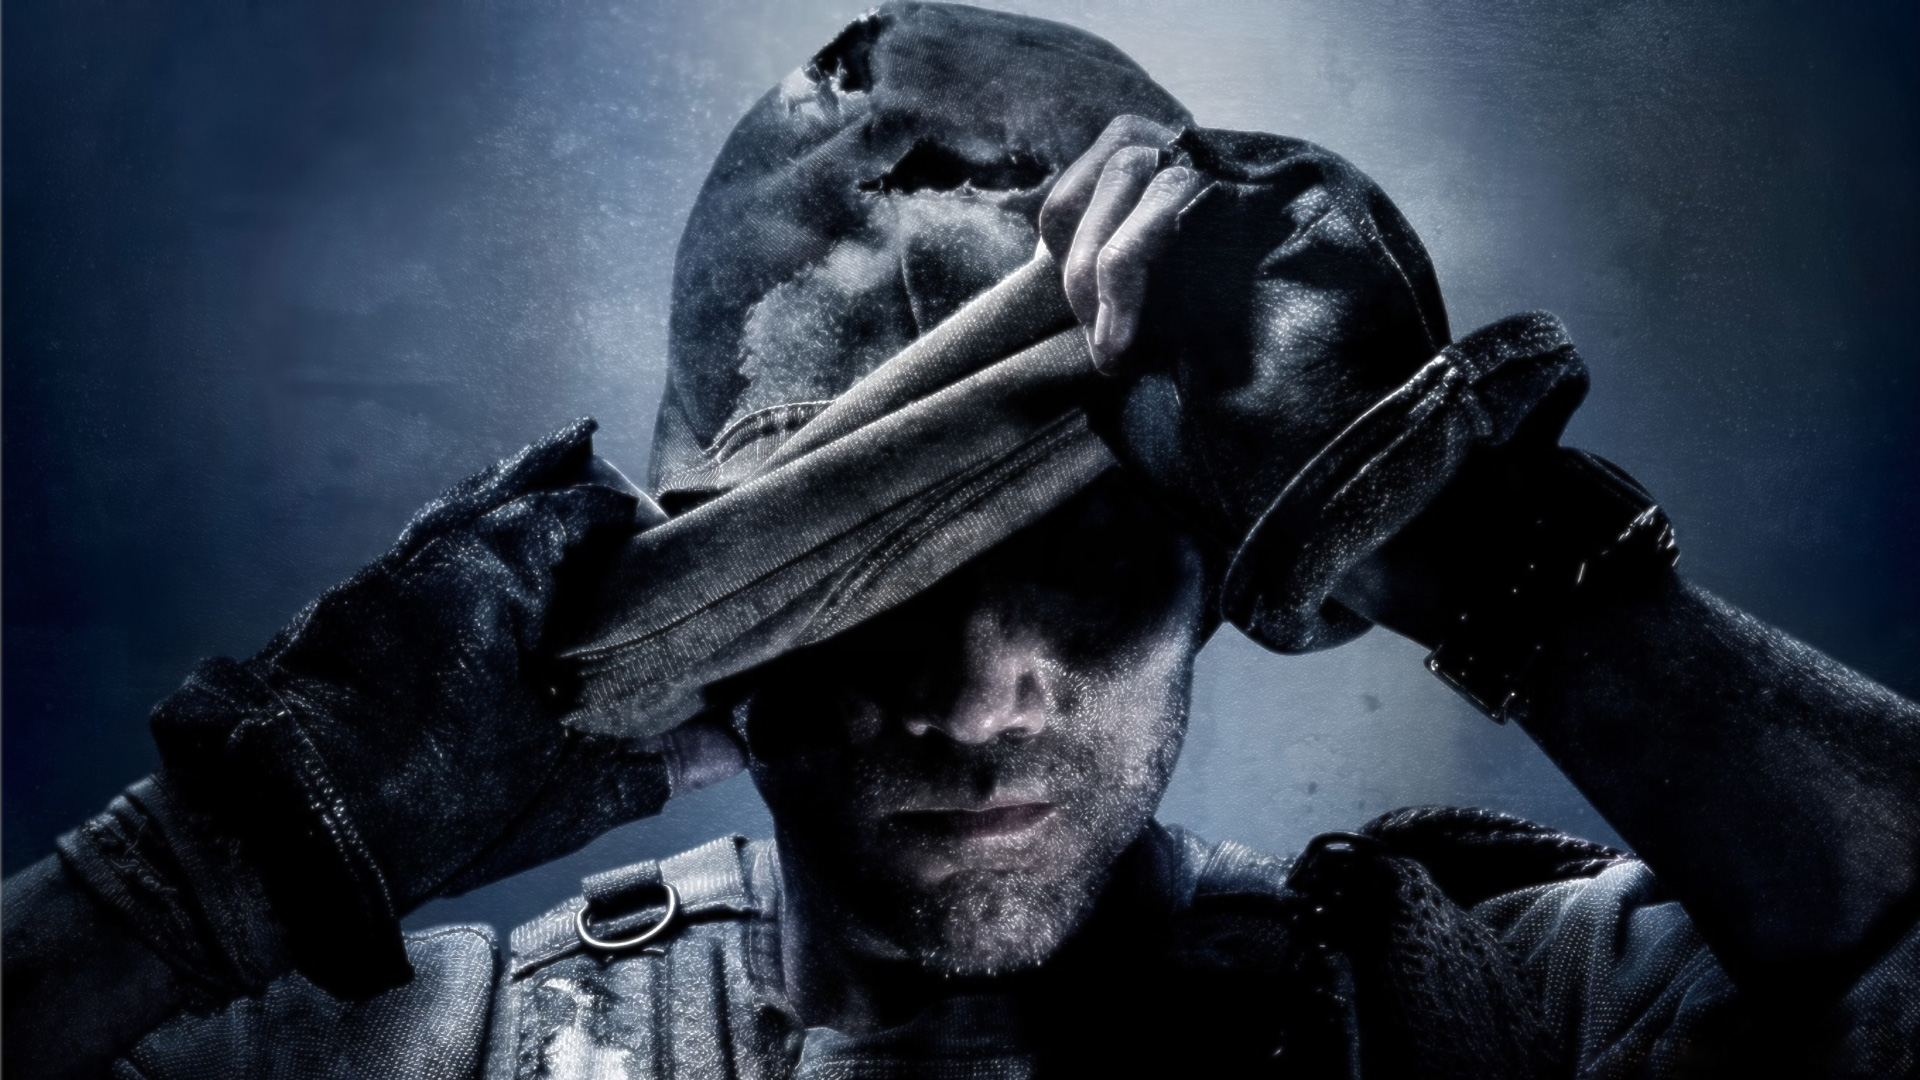 Call Of Duty Ghosts Wallpaper 1920x1080 52223